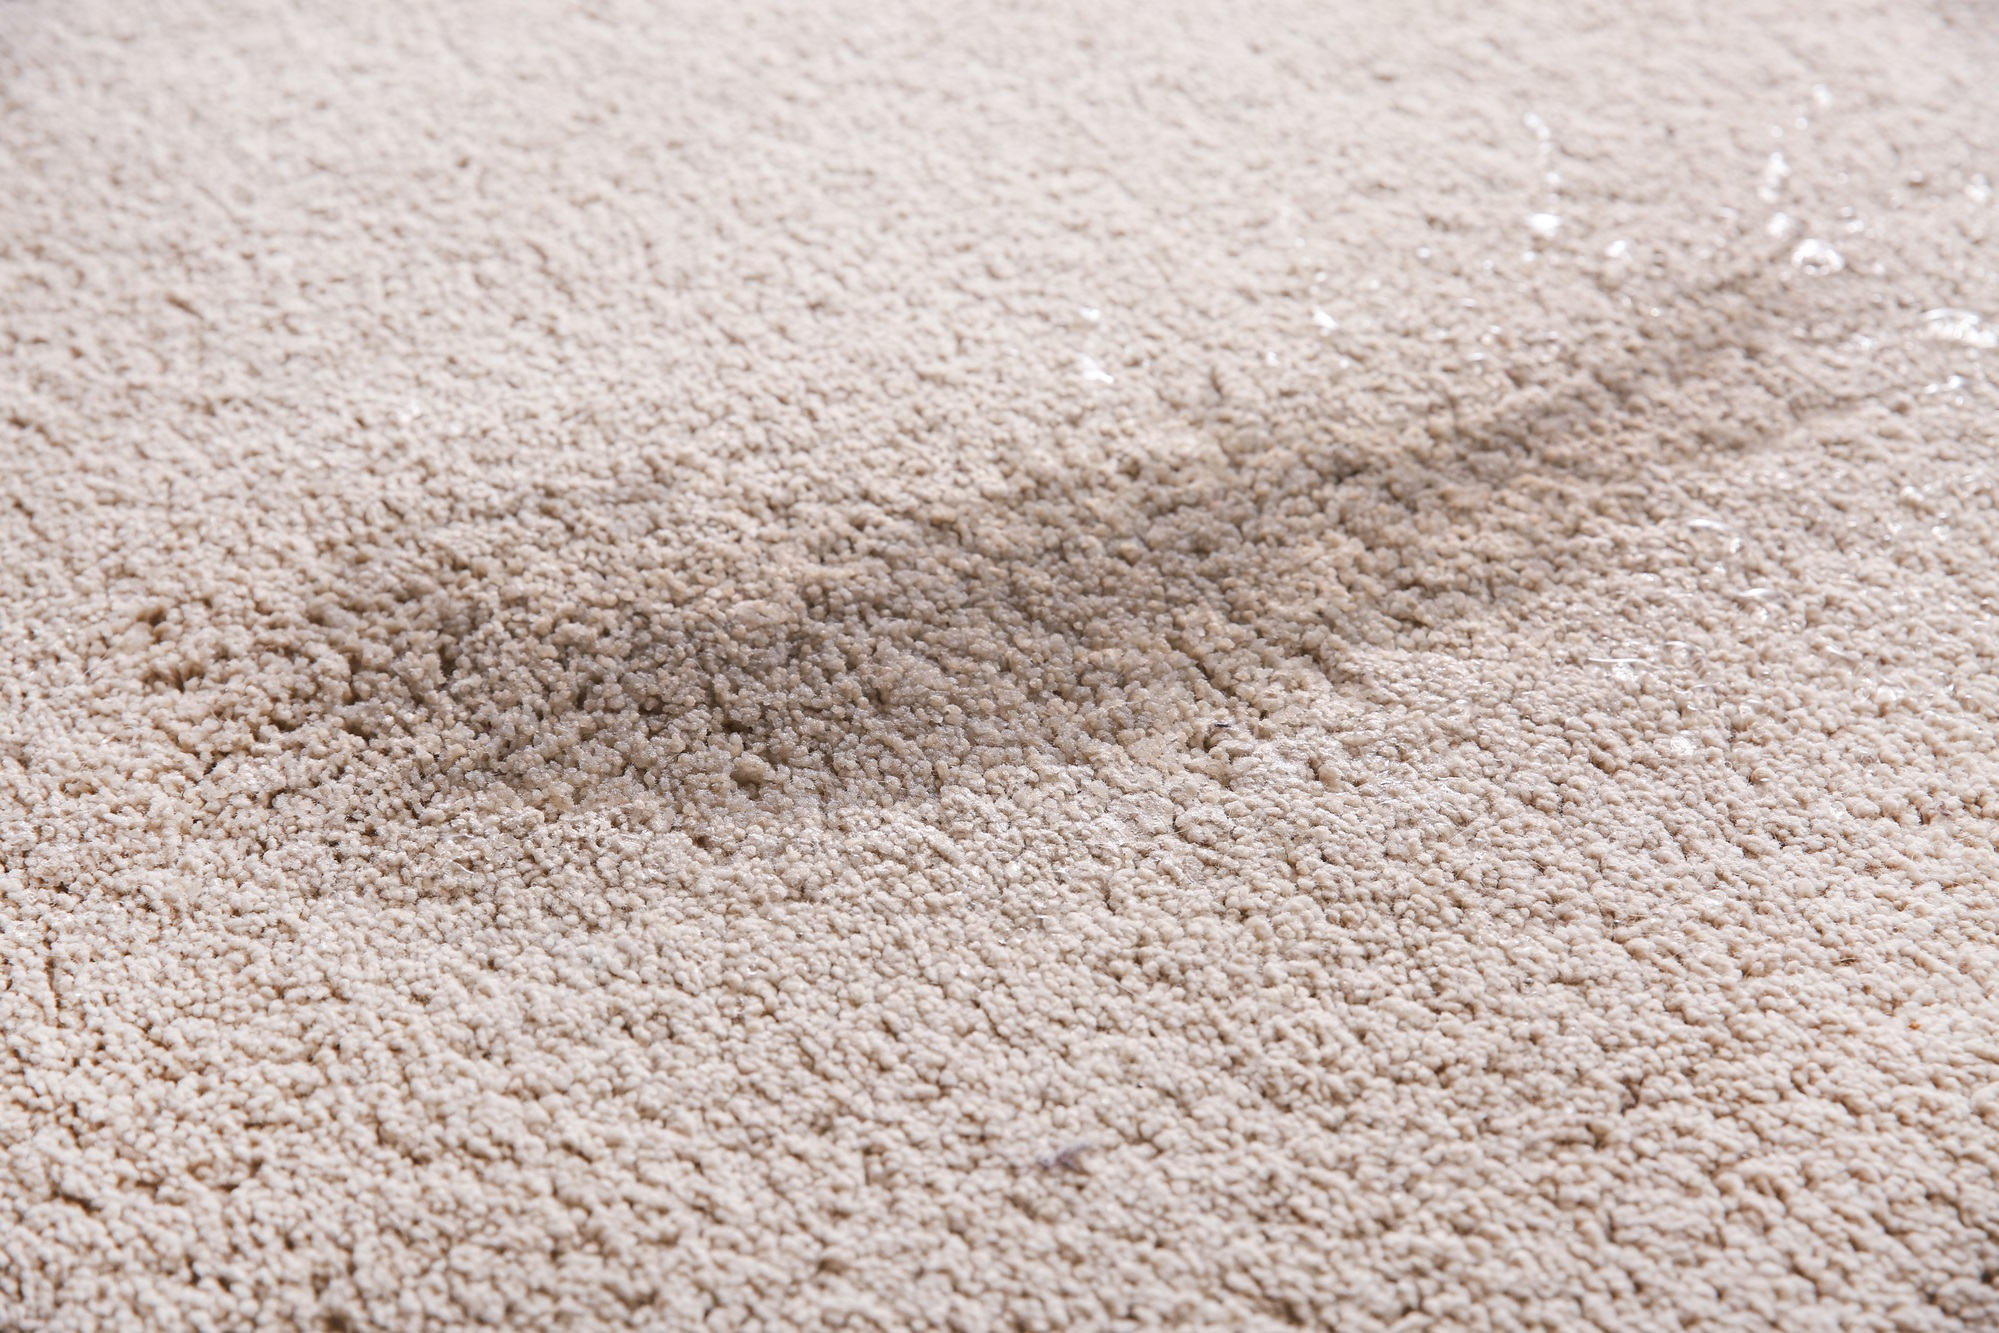 4 Signs You Need Carpet Cleaning for Mold - Polar Carpet Cleaning ...